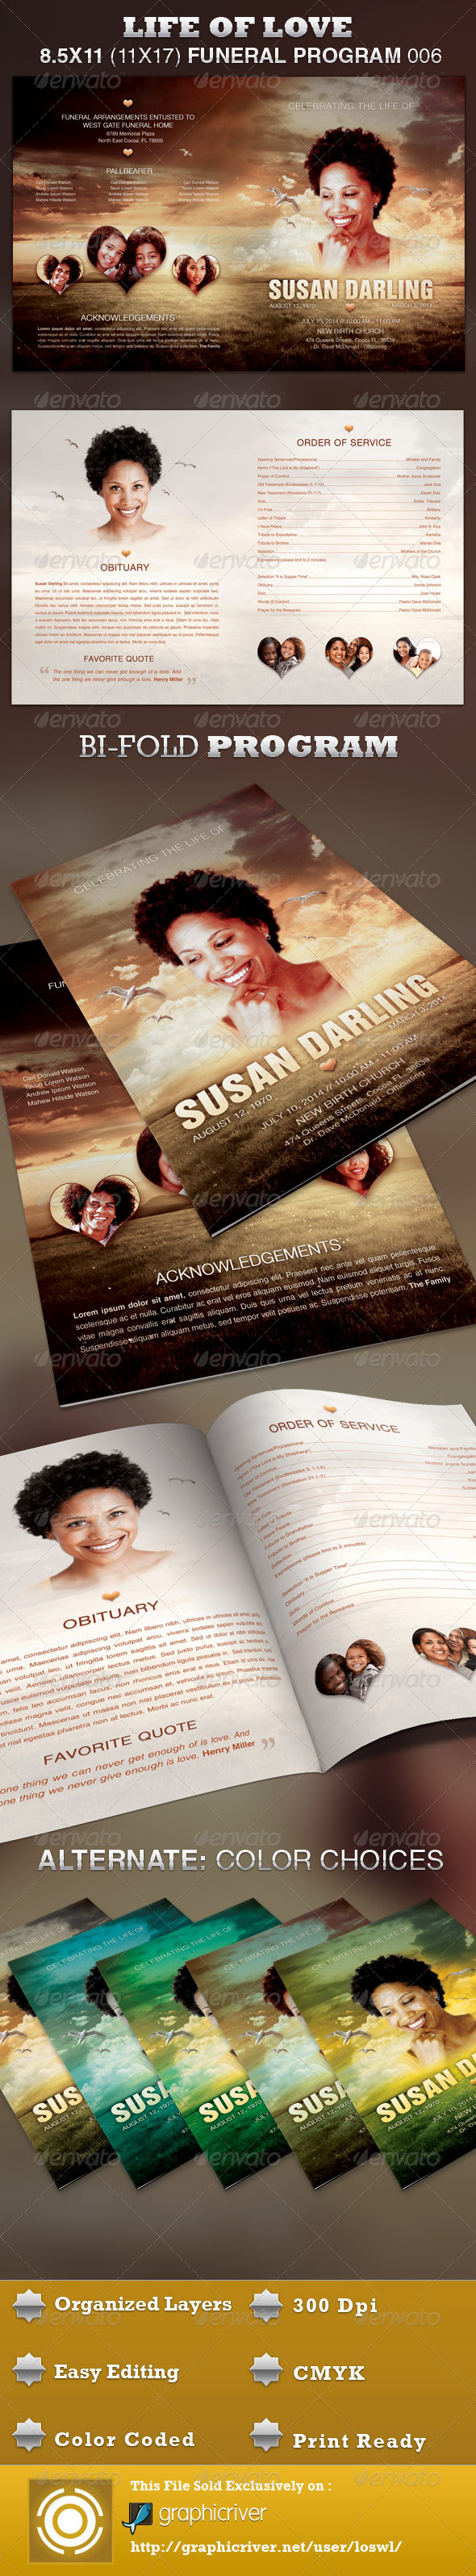 Life of Love Funeral Program Template 006 - Informational Brochures